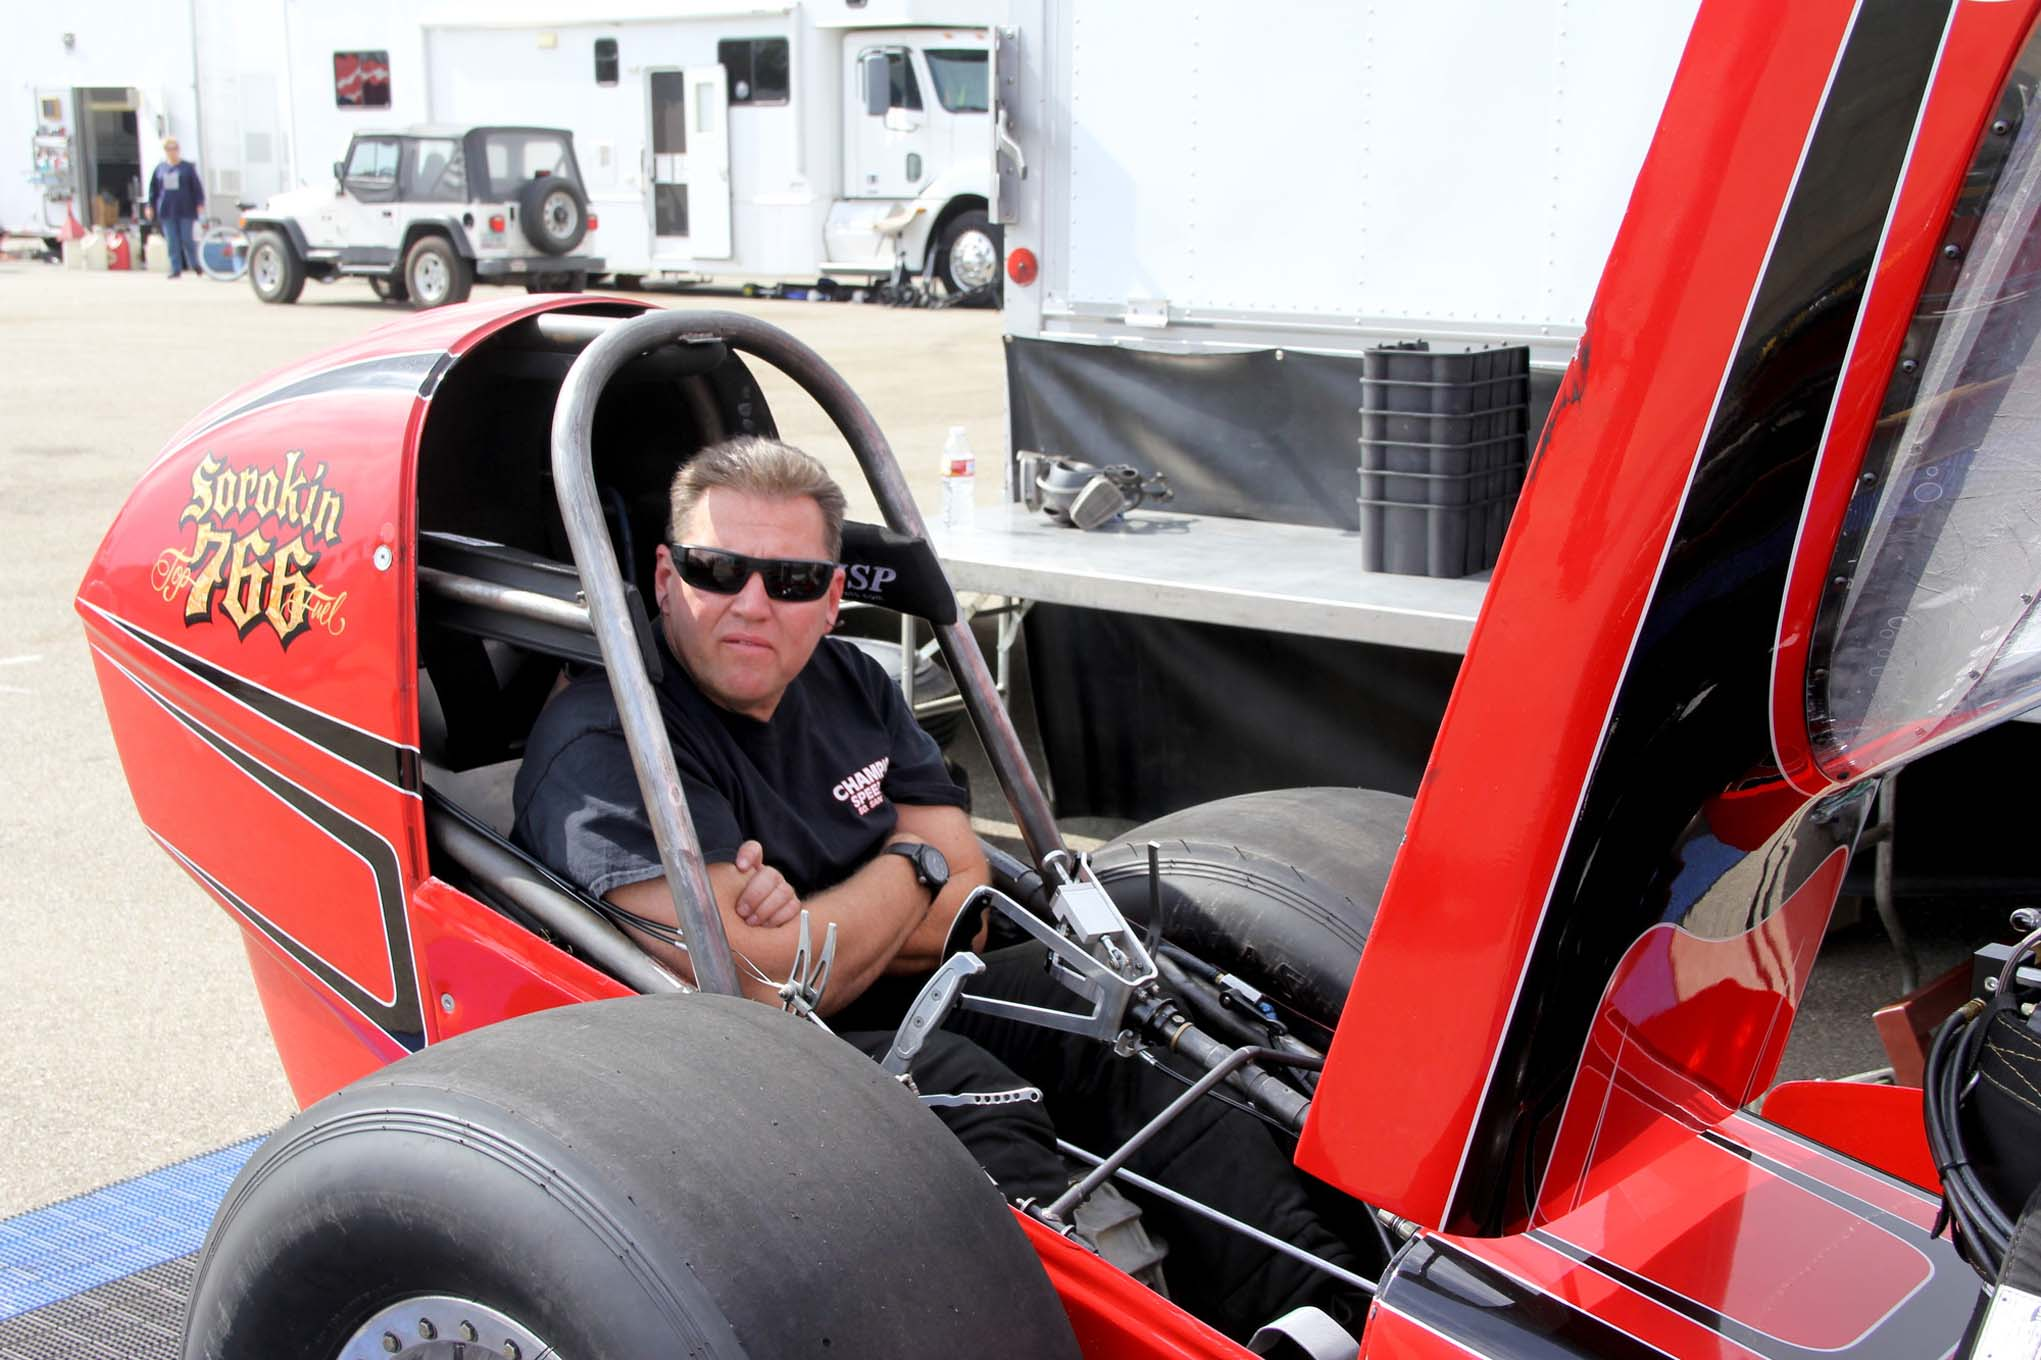 Adam Sorokin anxiously awaits the next round of Nostalgia Top Fuel. Having won the championship twice, he knows what it feels like and wants it even more now that it has been three years since last winning.